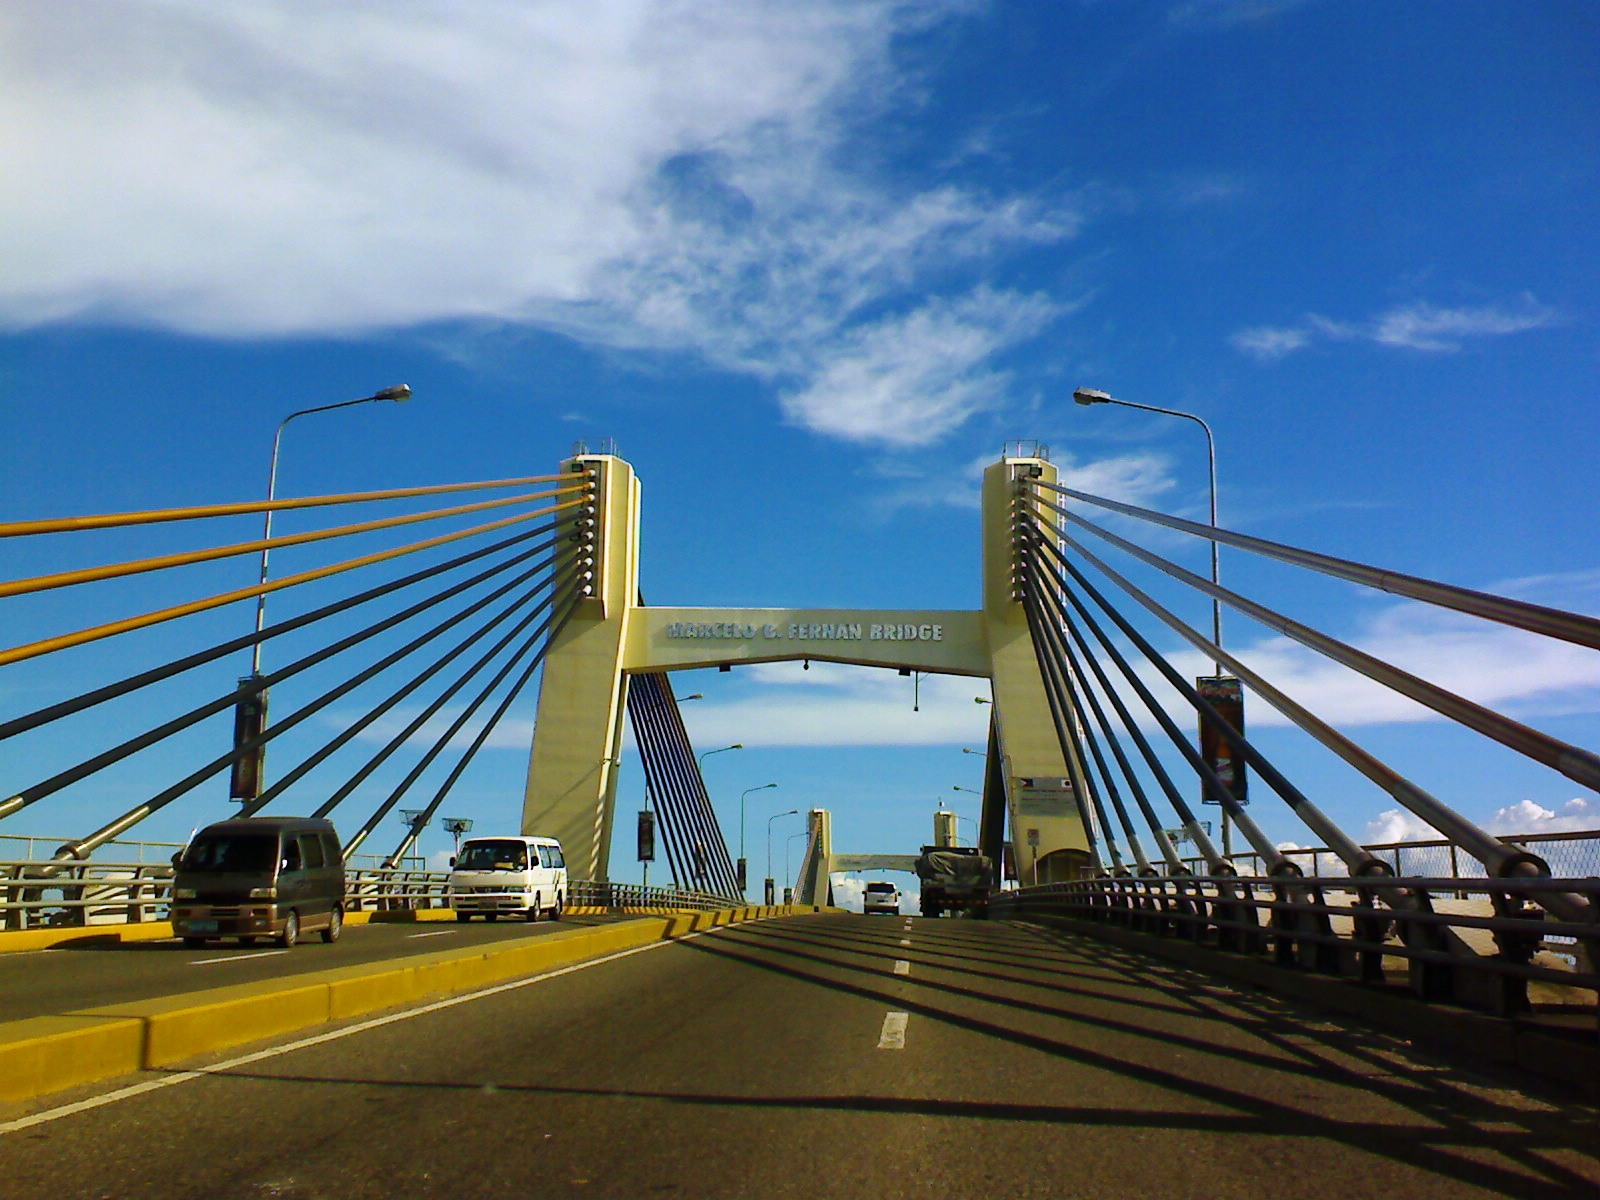 Bridge of mactan photo